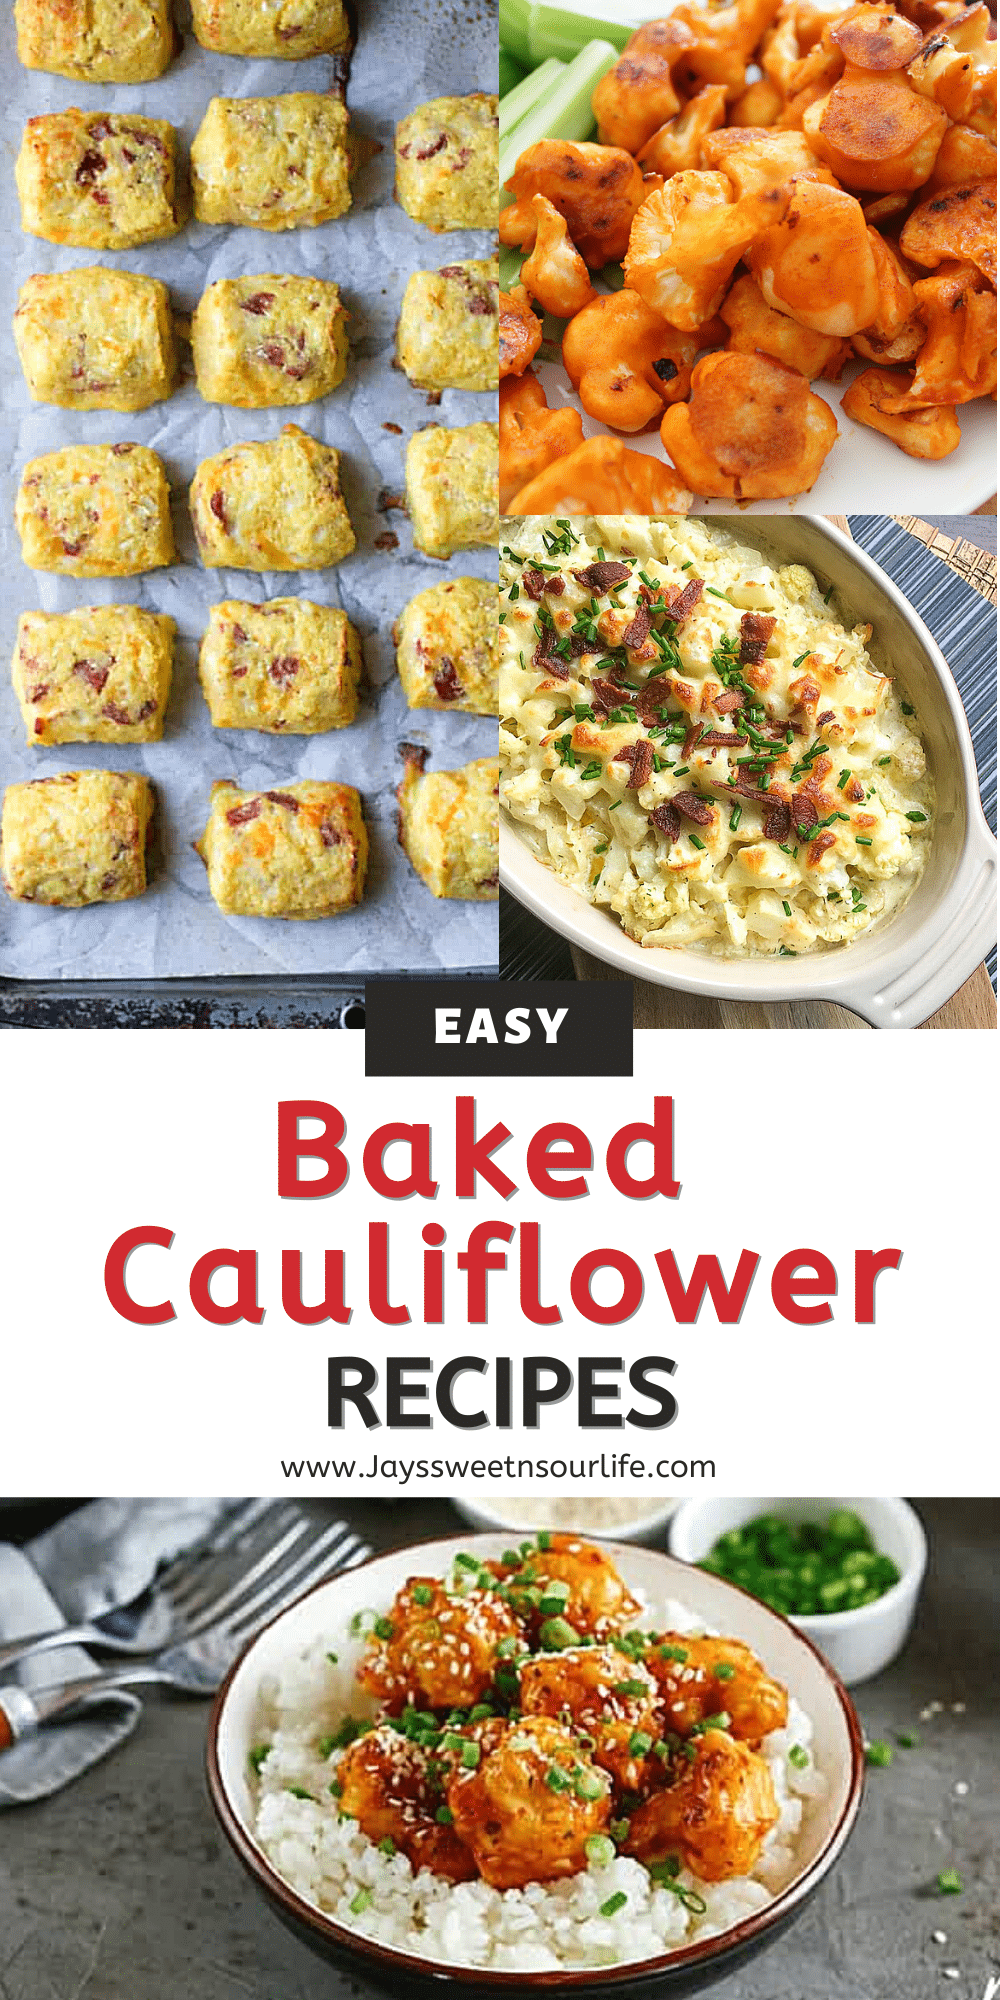 These easy baked cauliflower recipes are perfect for family weeknight dinners and side dishes. Each recipe is packed with flavor and none of the guilt, your family is guaranteed to love these Keto-friendly and Vegan cauliflower recipes.